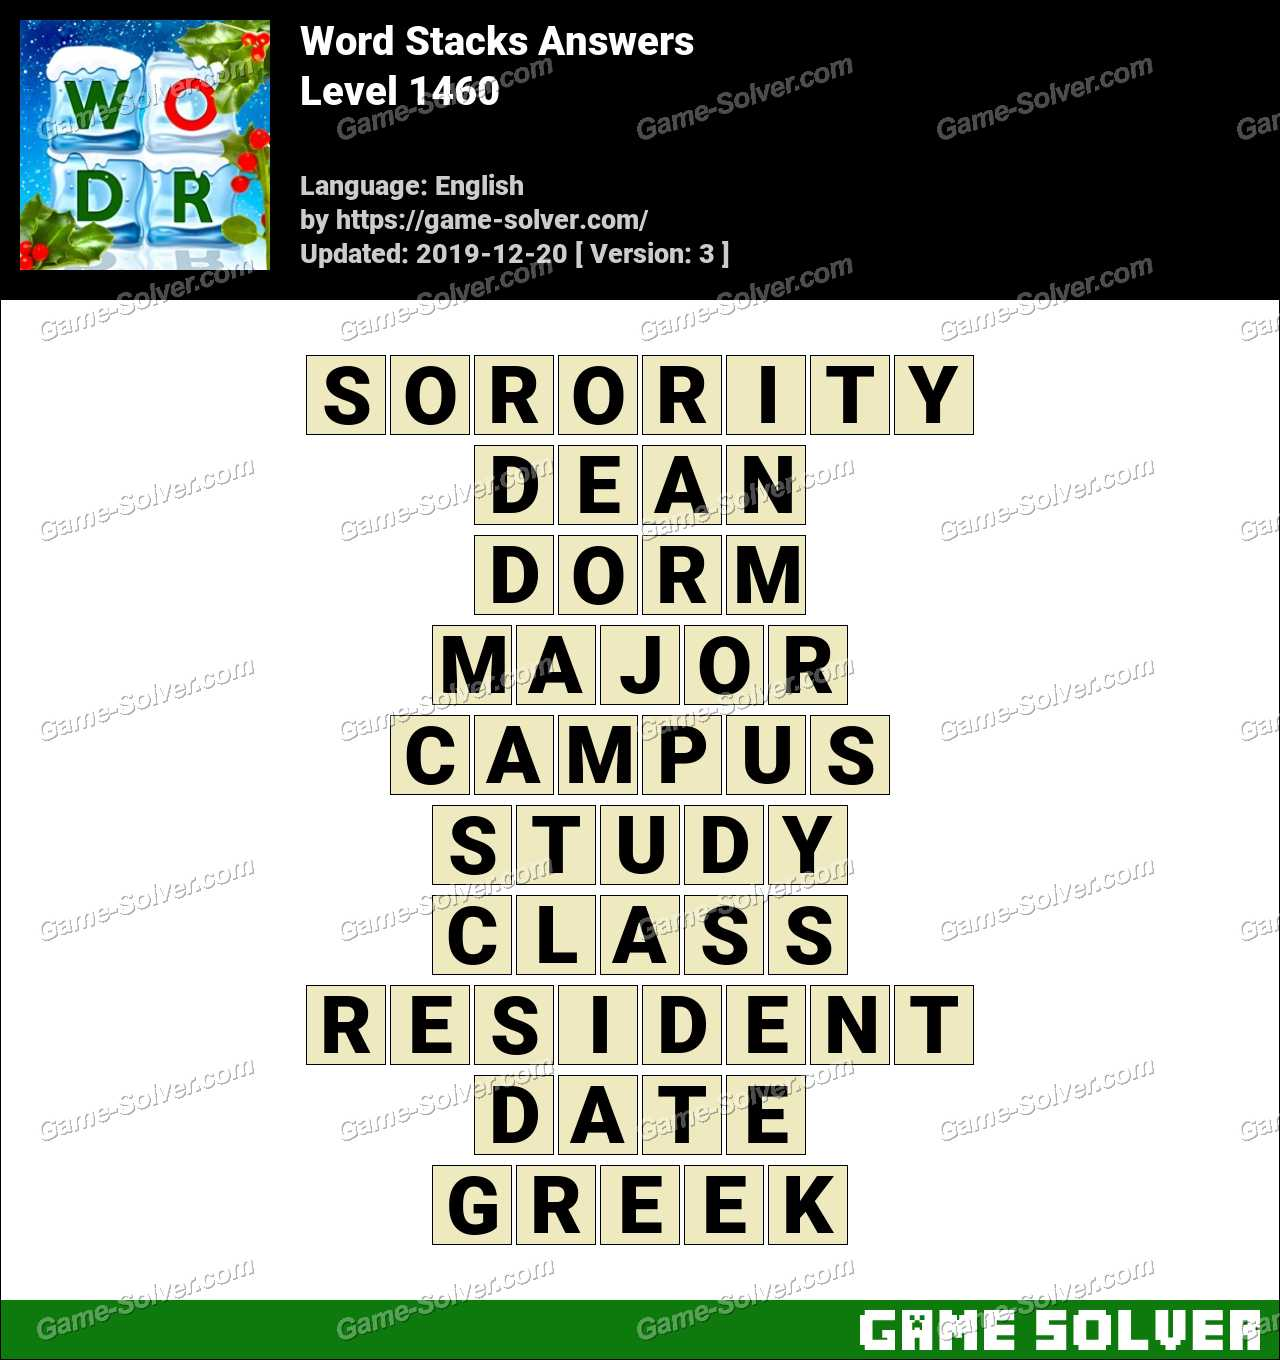 Word Stacks Level 1460 Answers